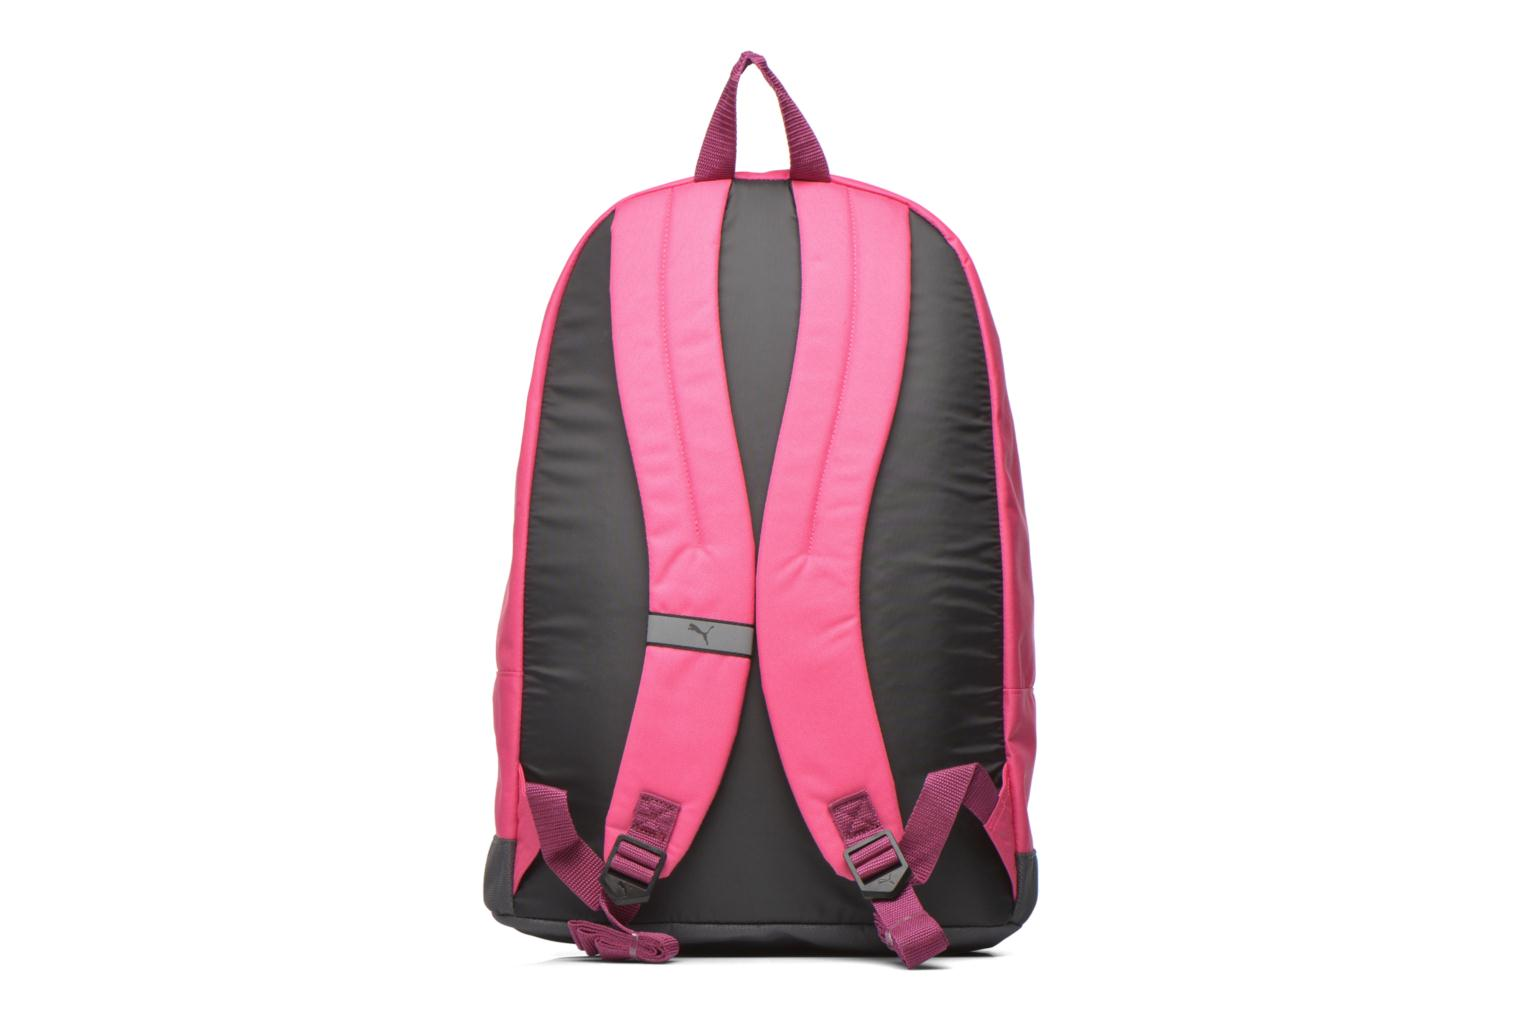 Sacs à dos Puma Pioneer backpack I Rose vue face